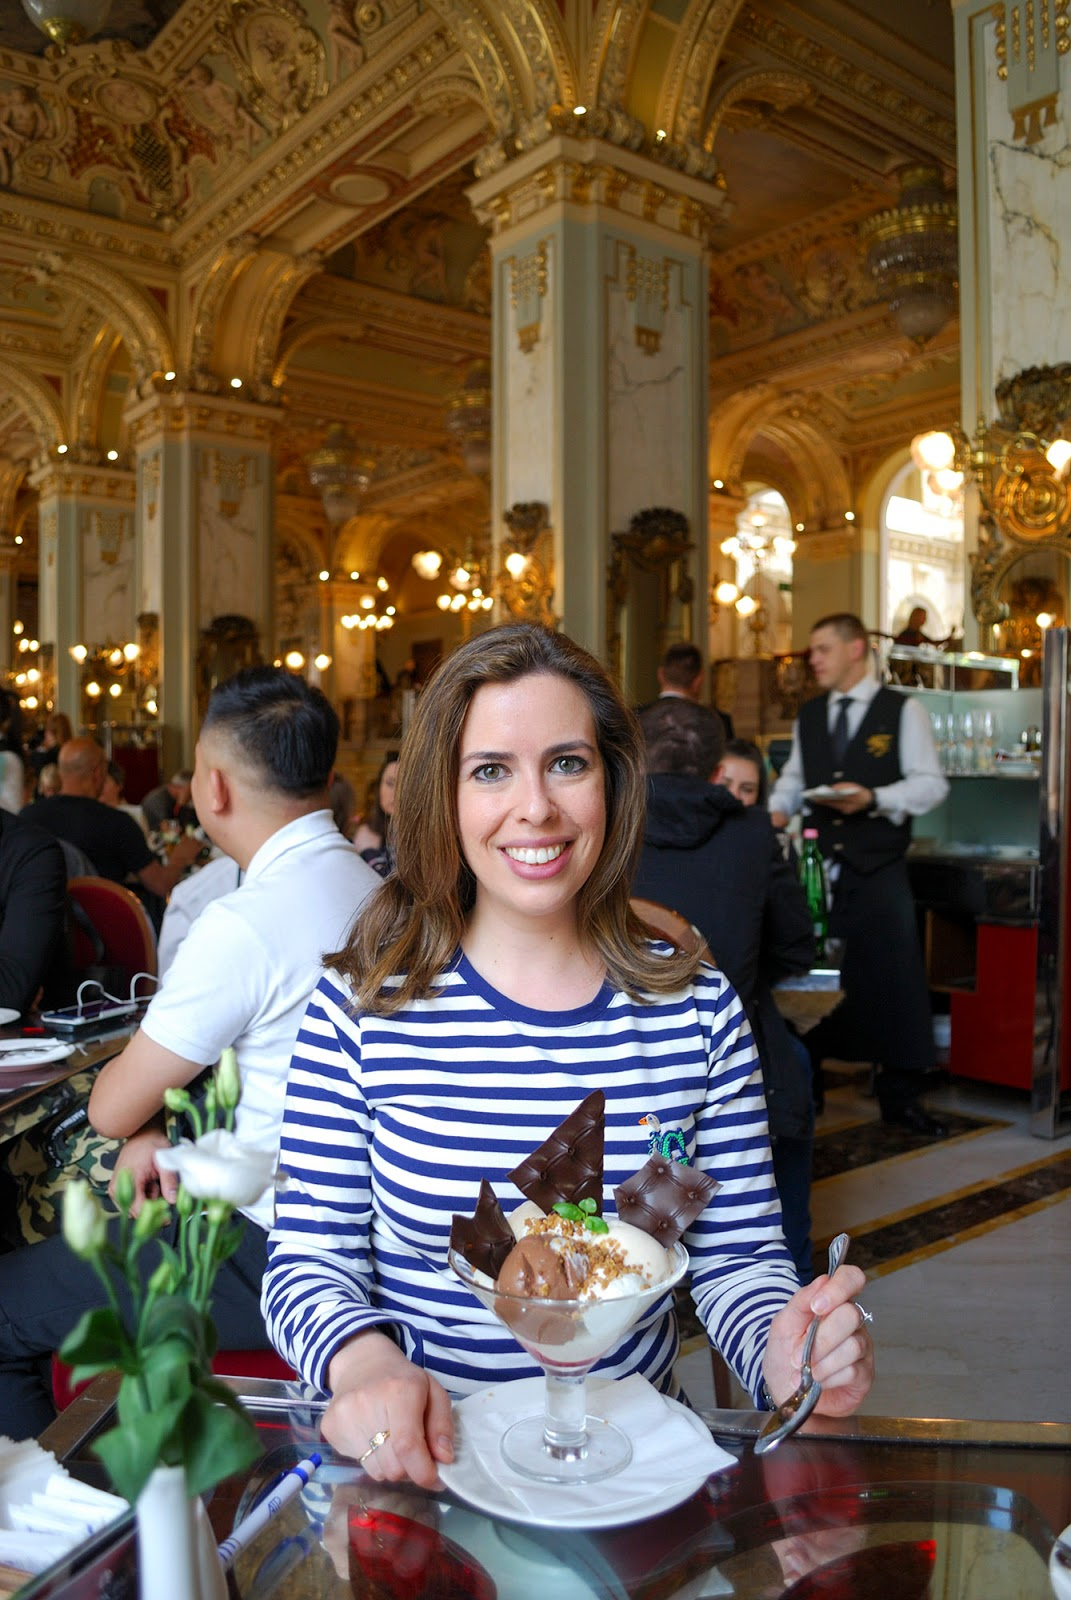 new york cafe budapest guide itinerary instagram worthy spot sights landmarks hungary luxury menu ice-cream